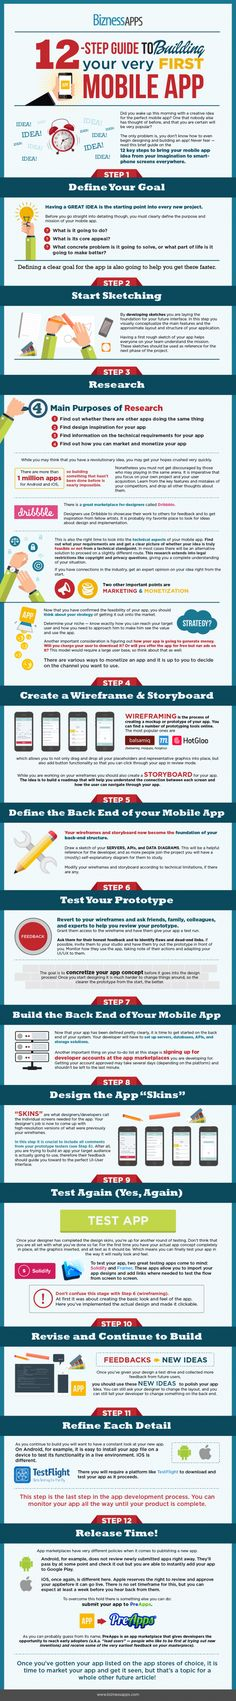 How to Build a Mobile App for Your Business in 12 Easy Steps (Infographic) | Inc.com